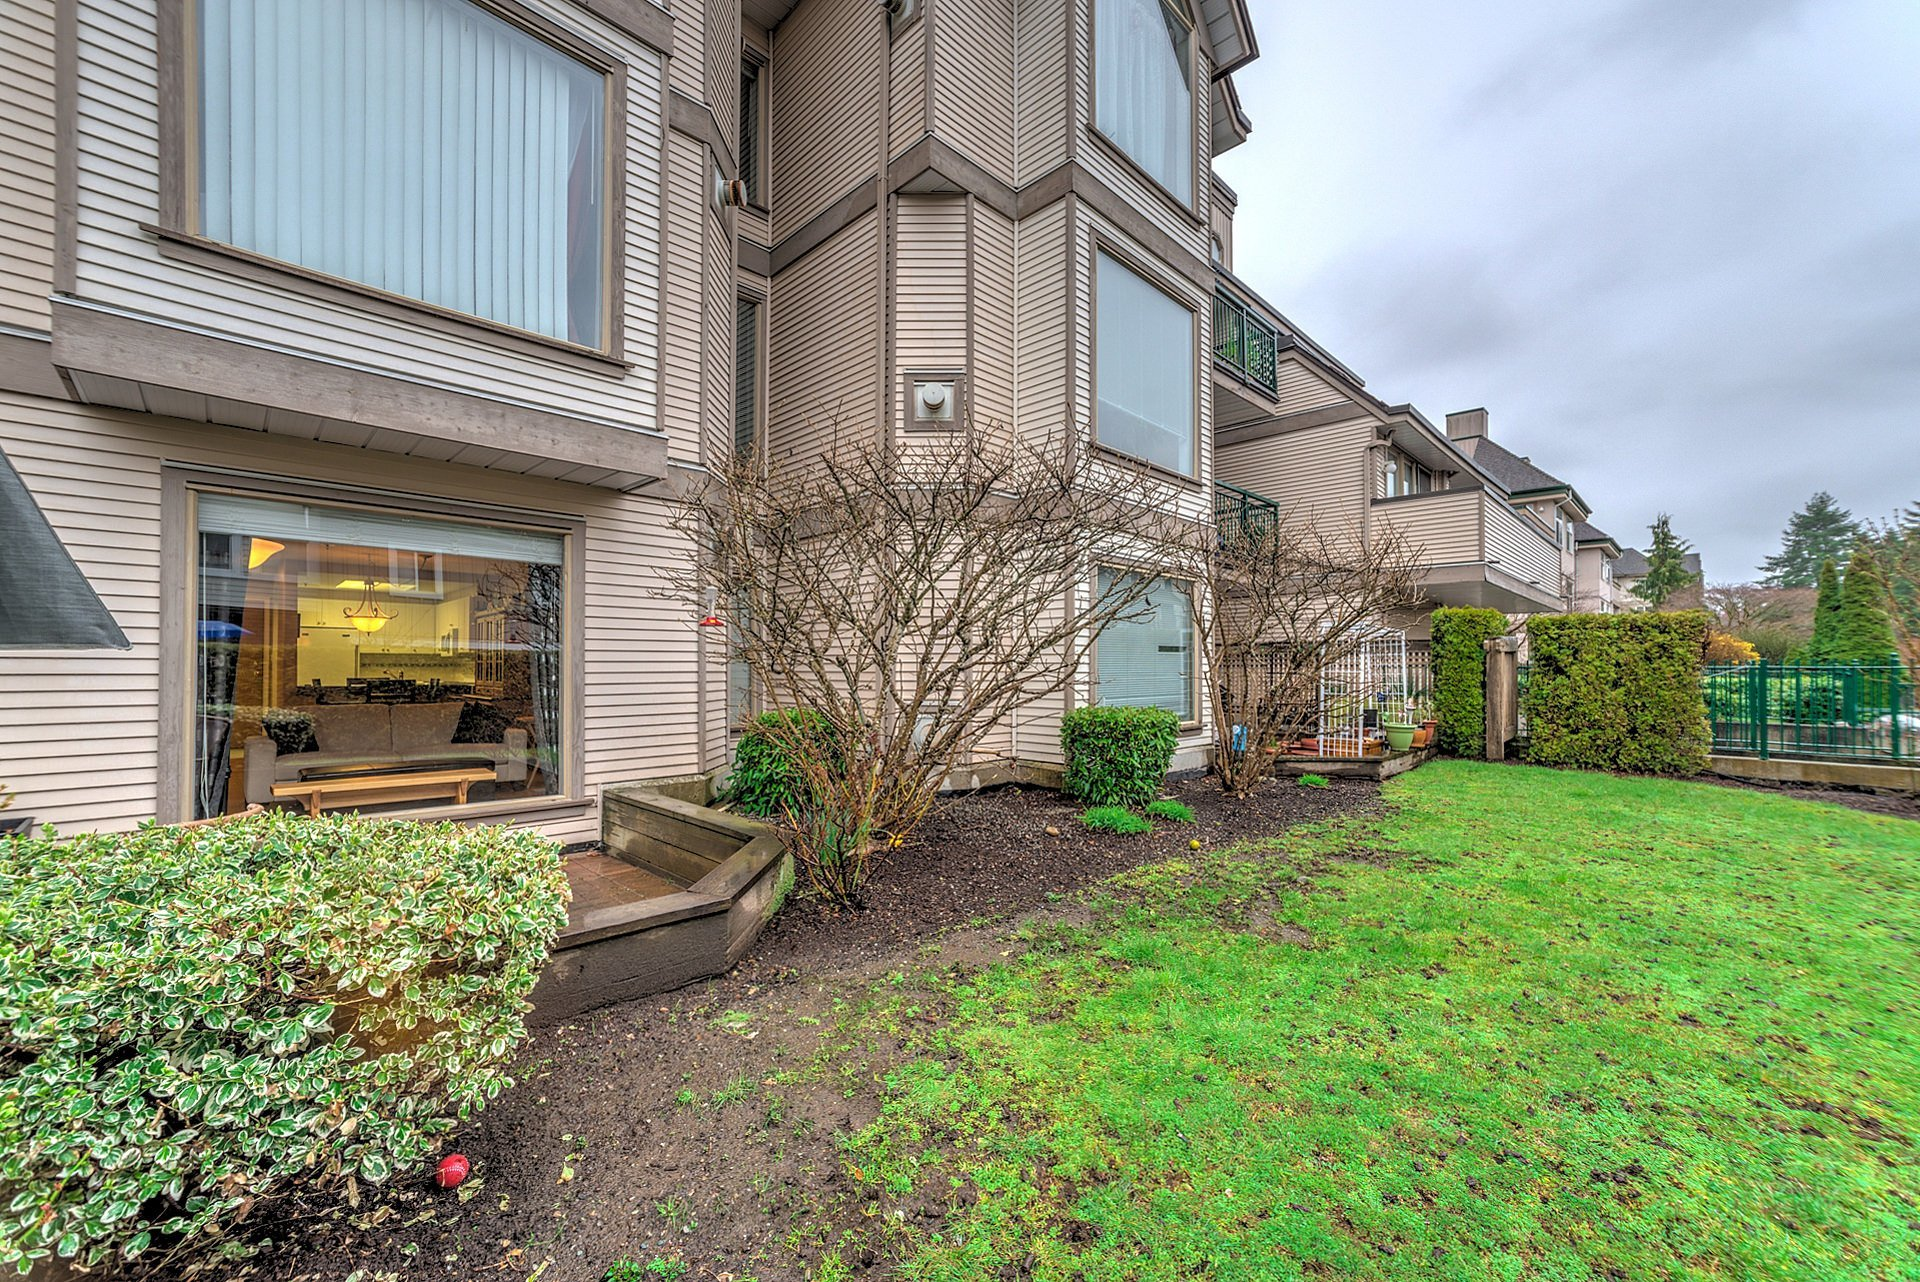 31207_21 at 105 - 1650 Grant Avenue, Glenwood PQ, Port Coquitlam